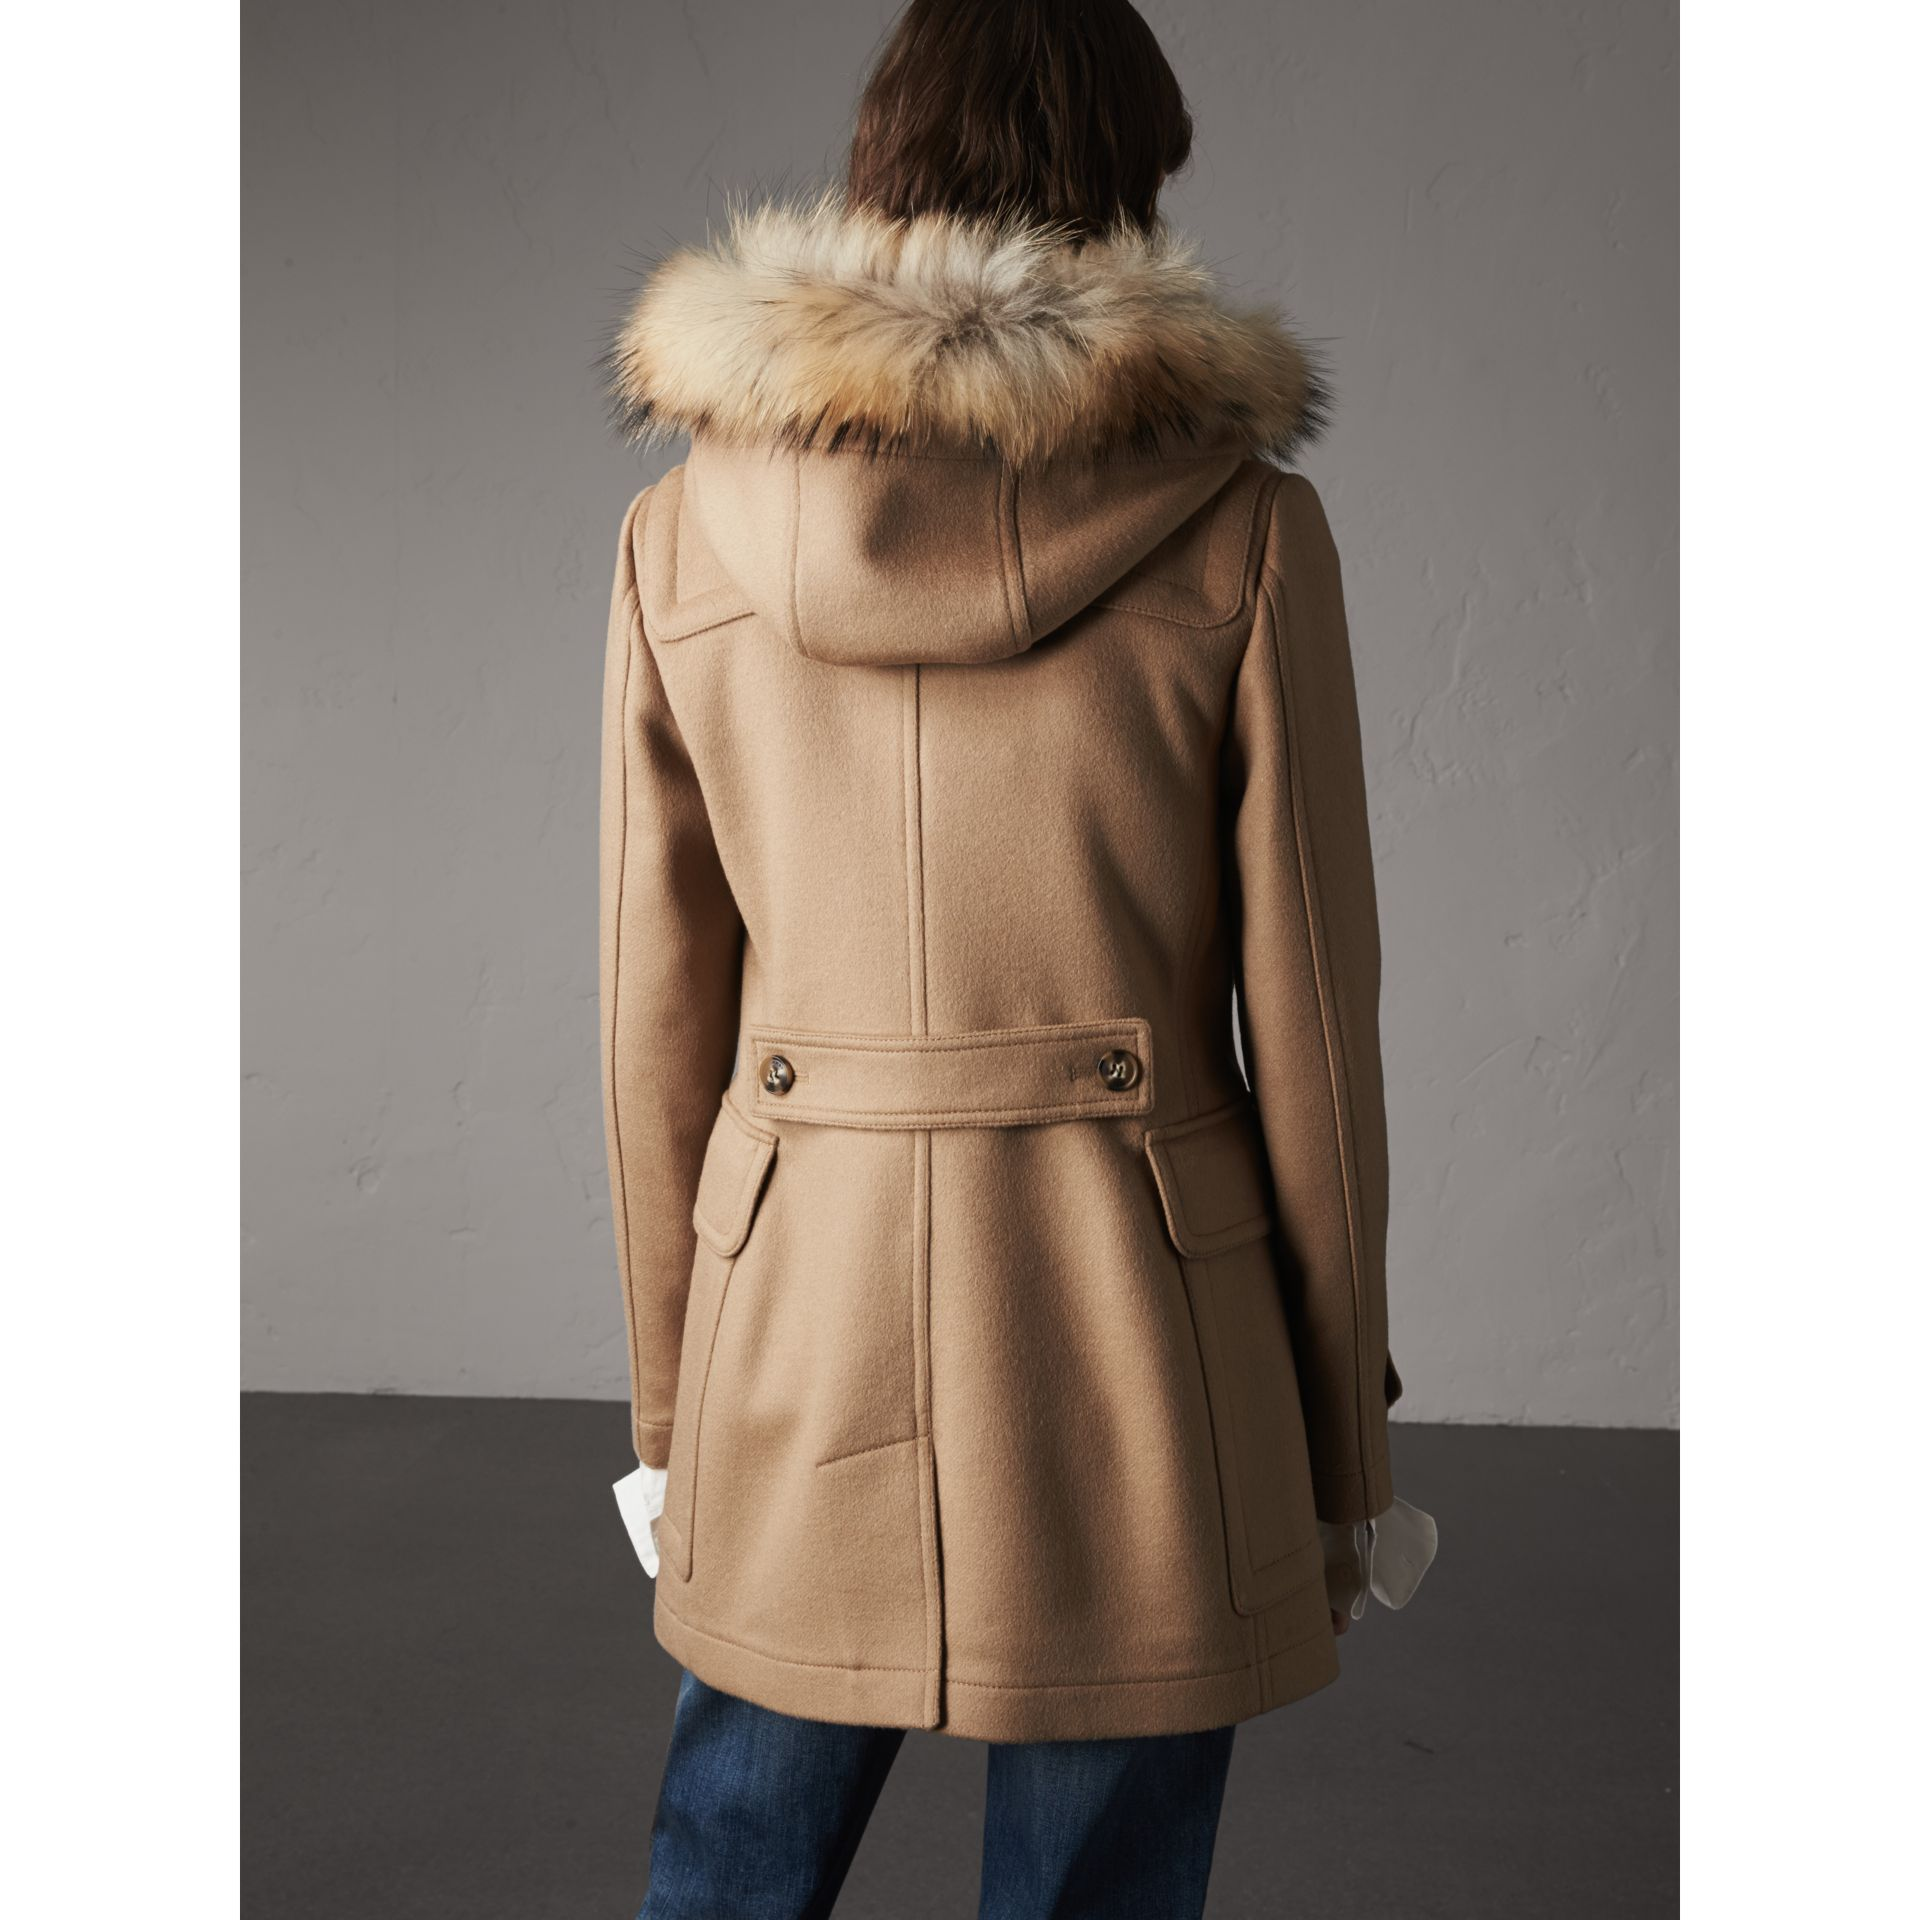 Duffle-coat en laine avec bordure en fourrure amovible (Camel) - Femme | Burberry - photo de la galerie 2